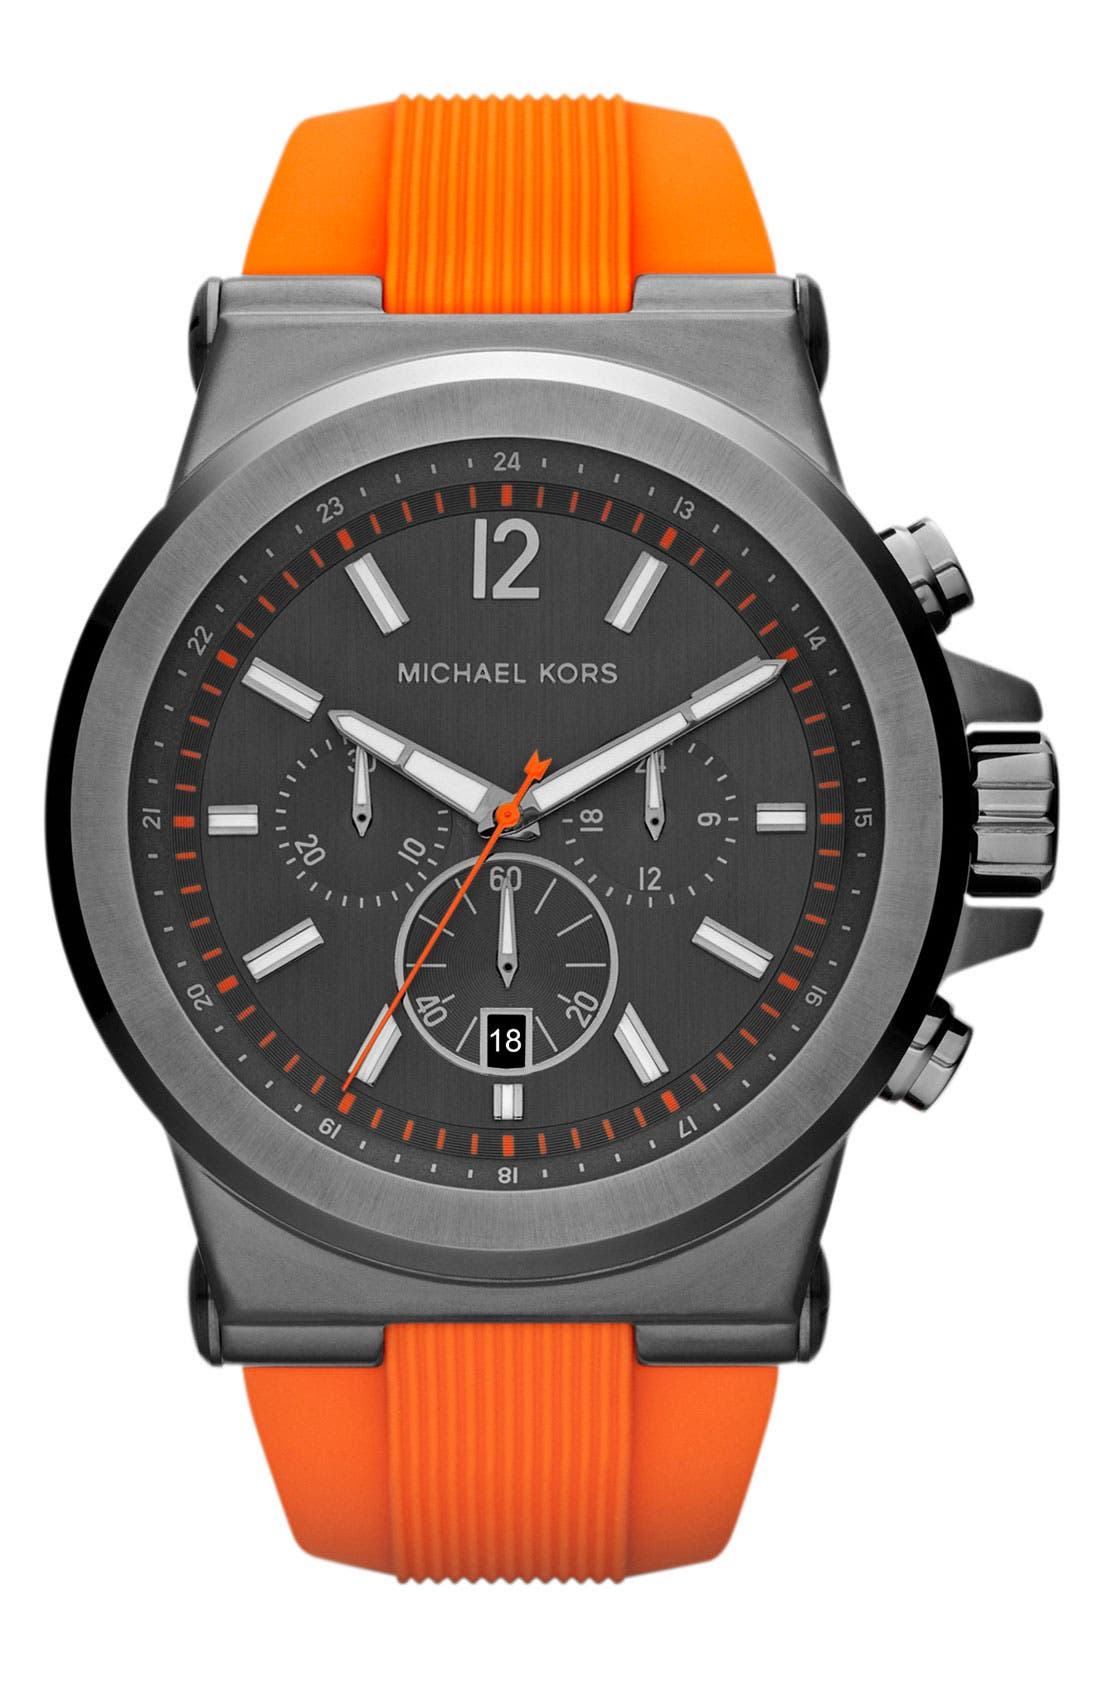 Main Image - Michael Kors 'Dylan' Chronograph Silicone Strap Watch, 48mm